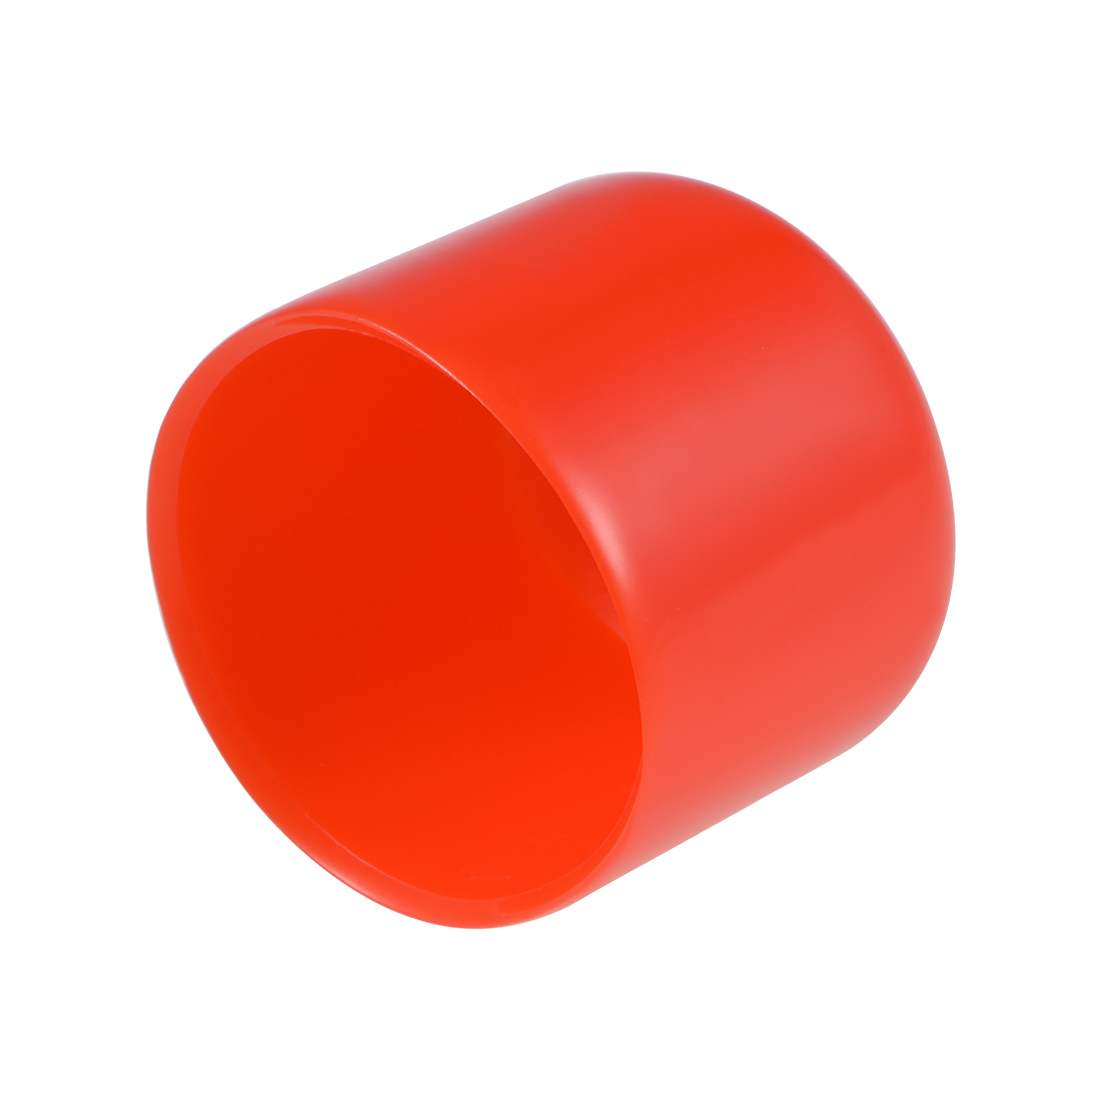 Screw Thread Protectors, 15mm ID 20mm Length Round End Cap Cover Red 20pcs